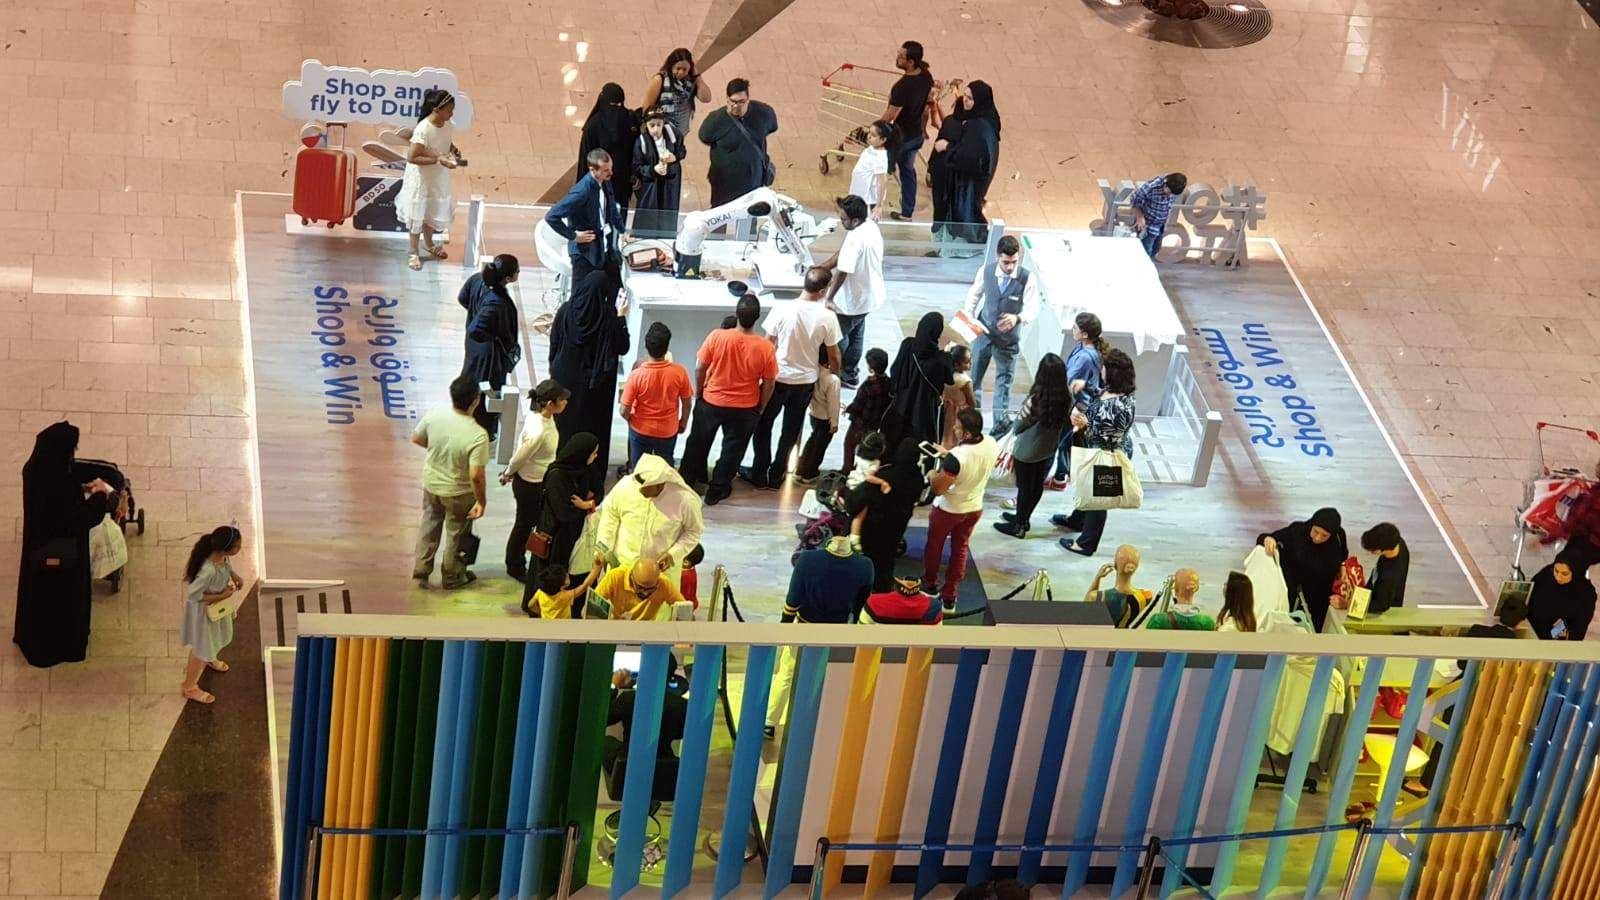 TECHNACY BRINGS AN INDUSTRIAL ROBOT TO BAHRAIN CITY CENTRE